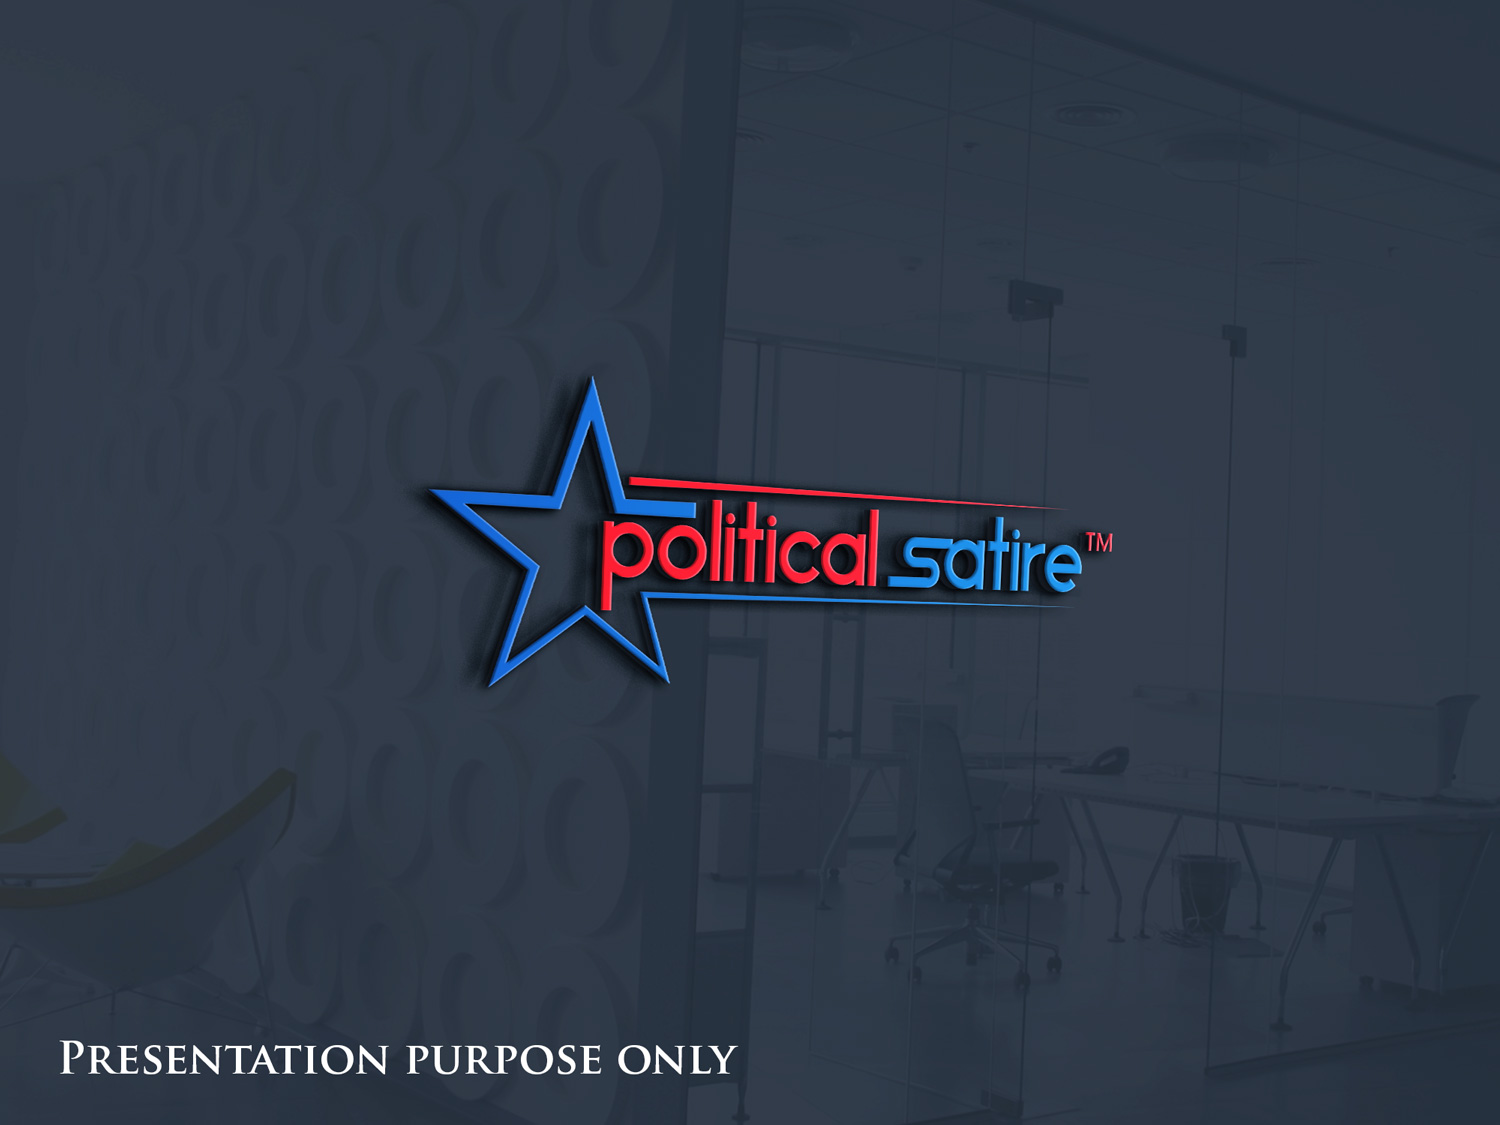 Playful Personable Logo Design For Political Satire By Simsak 2